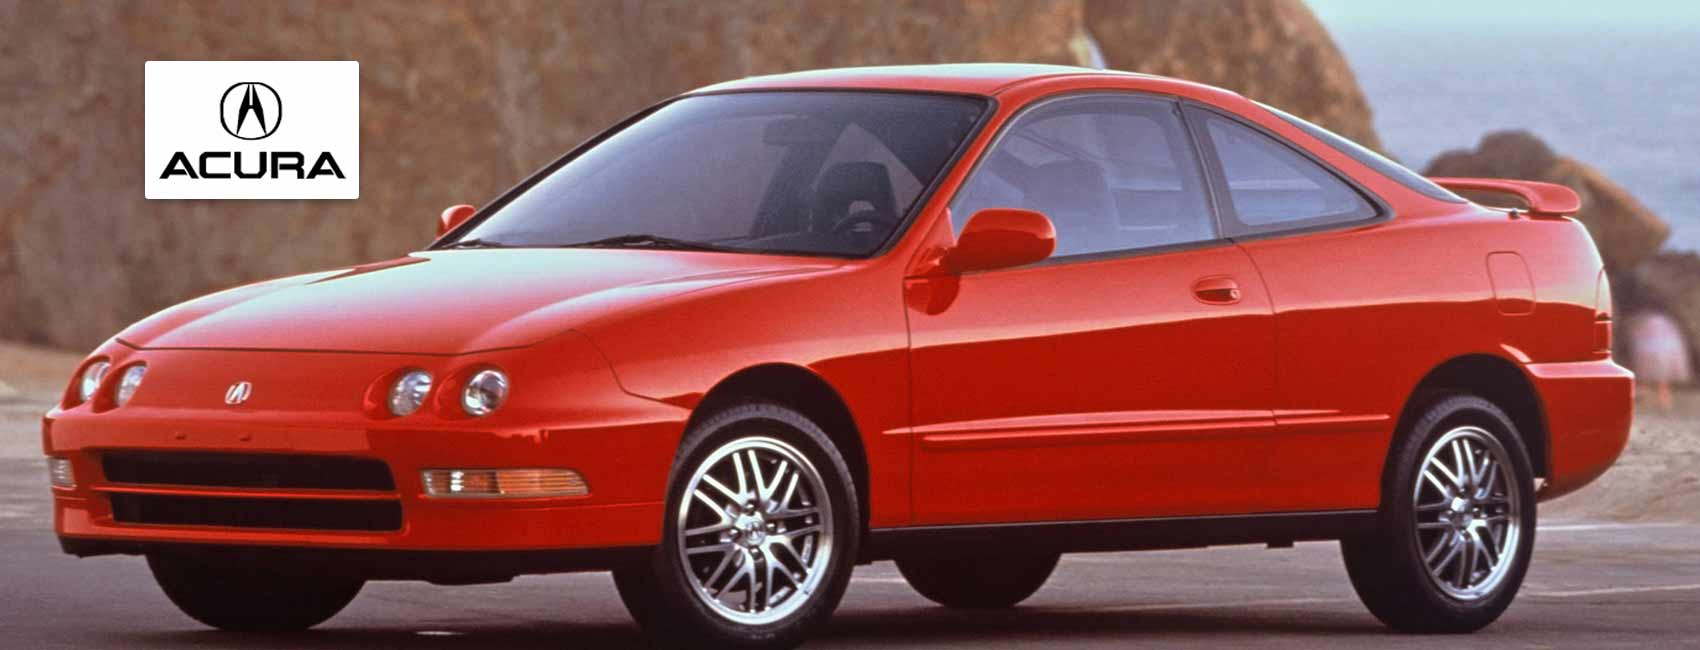 Acura Integra Parts >> Acura Integra Parts Buy Used Acura Integra Parts Online Best Price